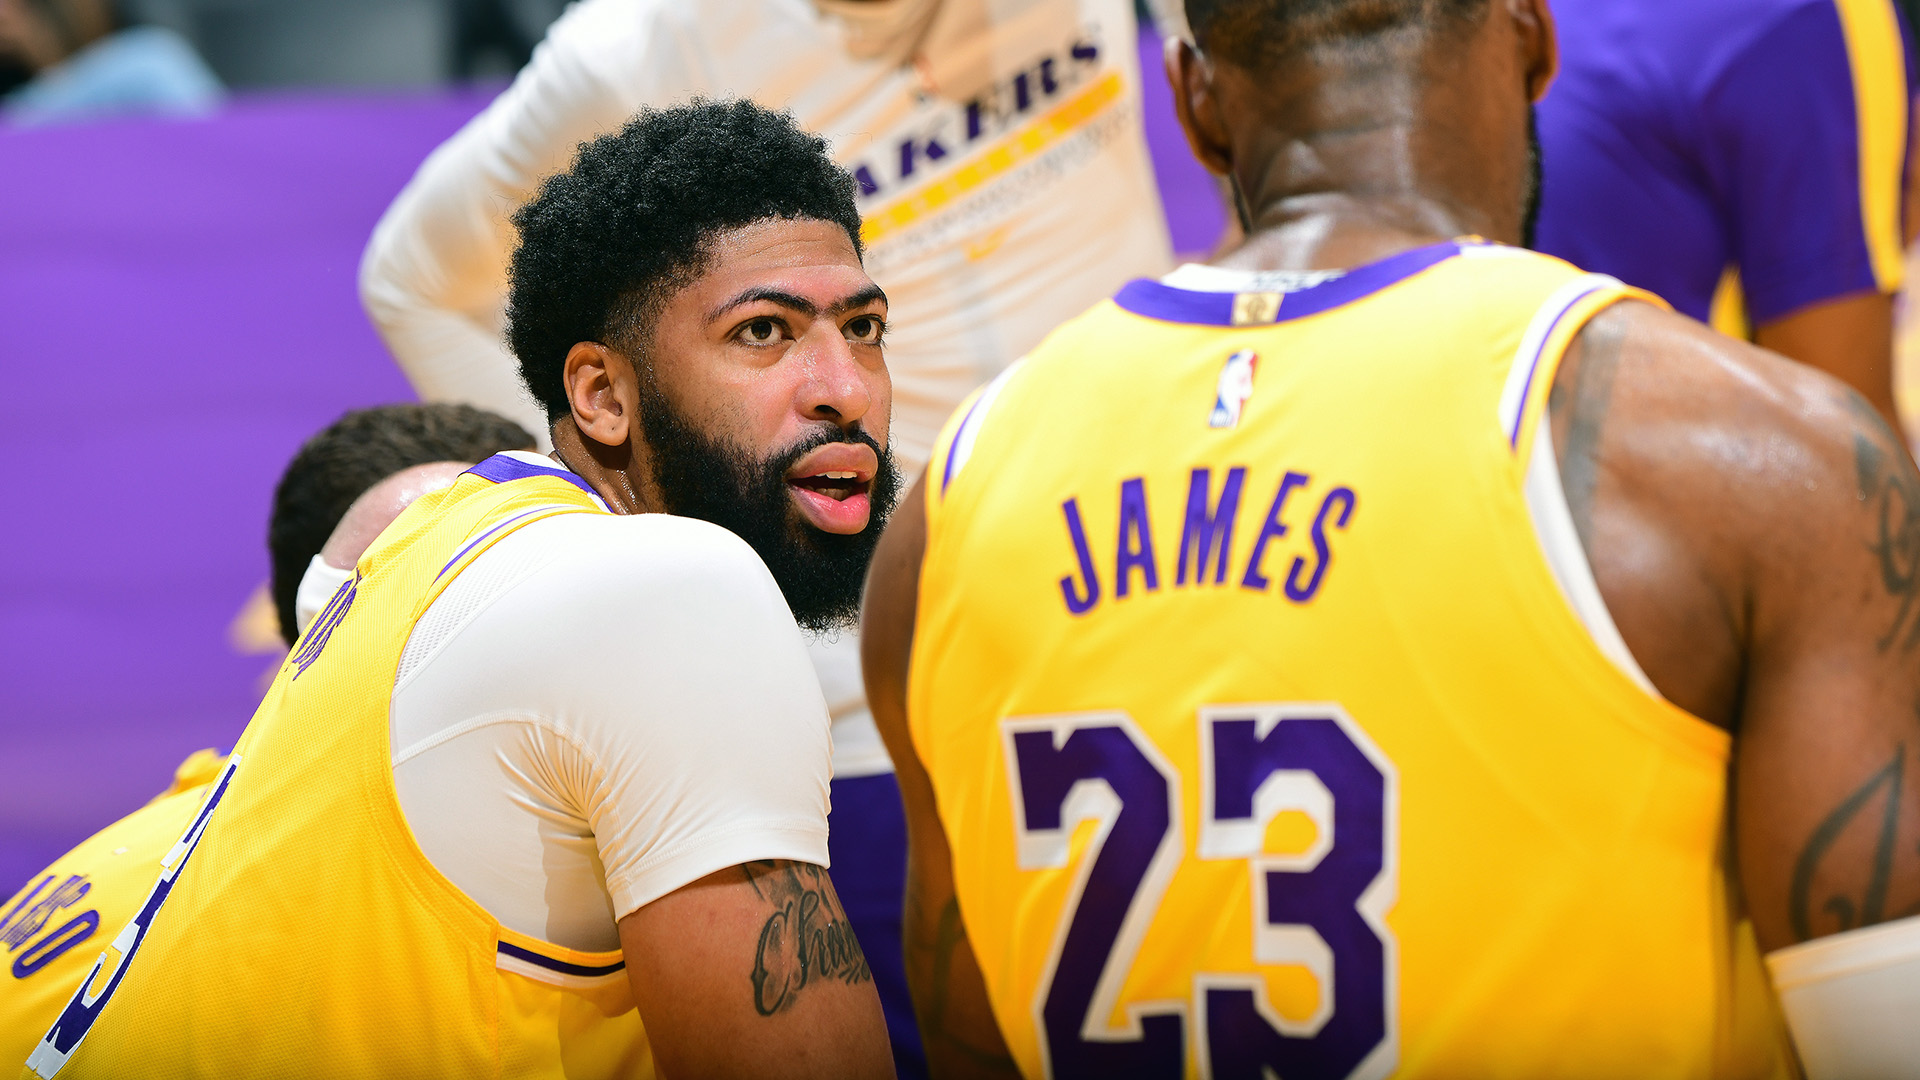 Los Angeles Lakers hope to run it back with healthier team